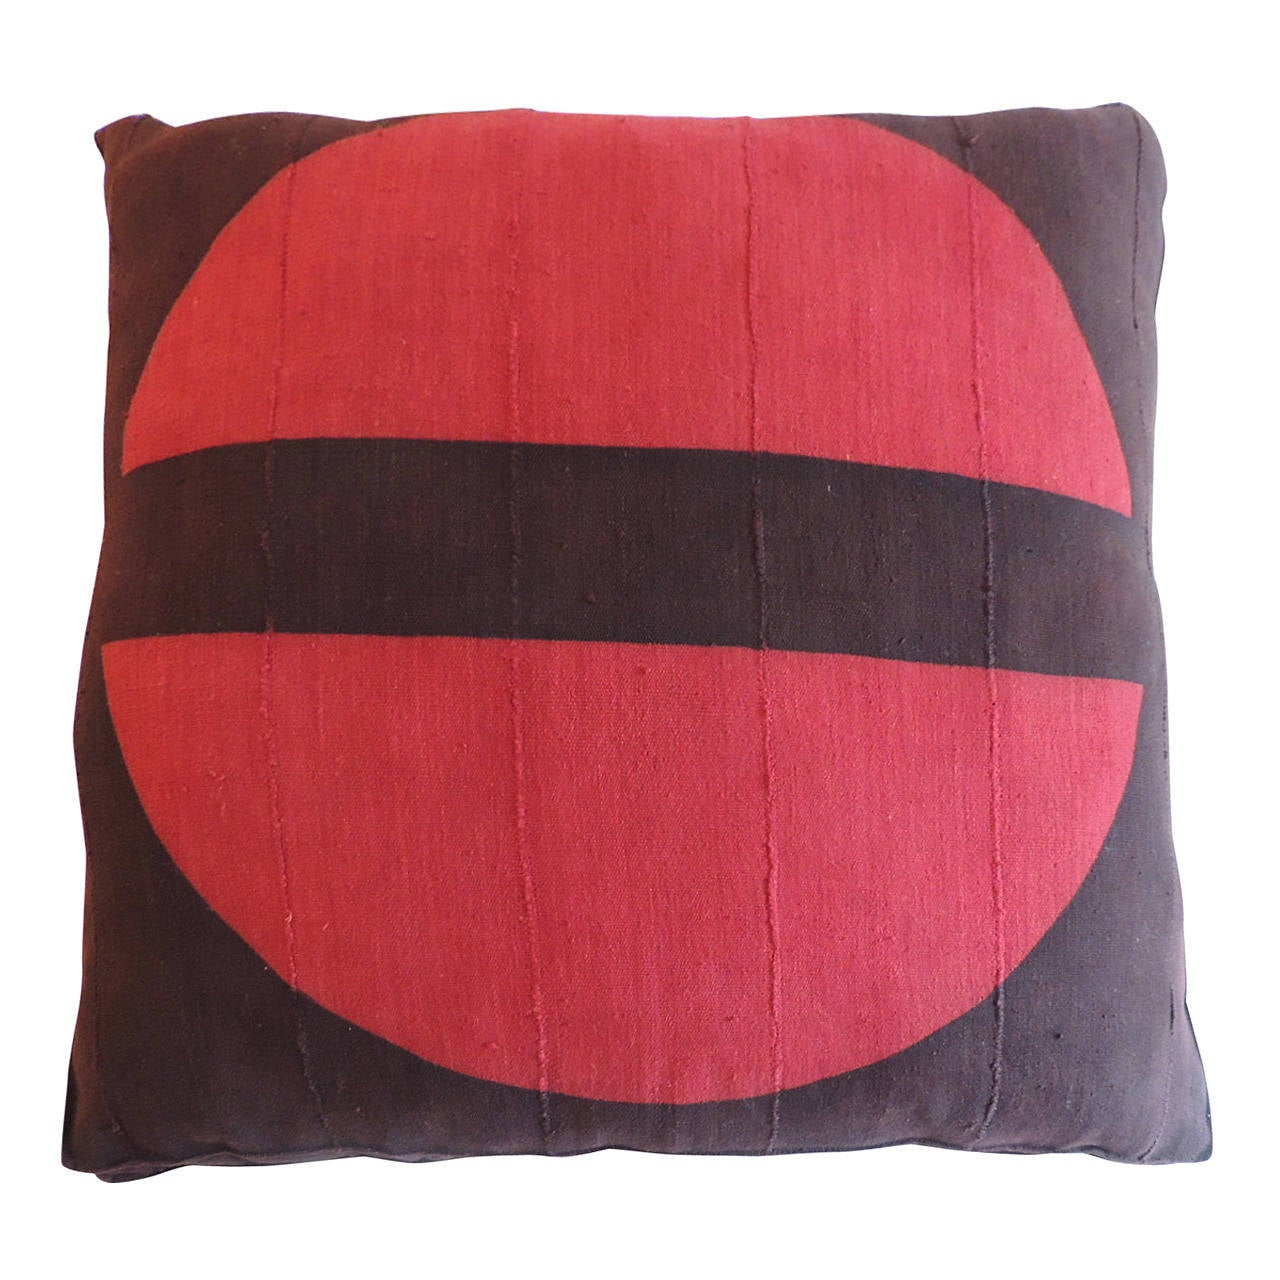 Floor Pillows Moroccan : Moroccan Floor Pillow 1. at 1stdibs